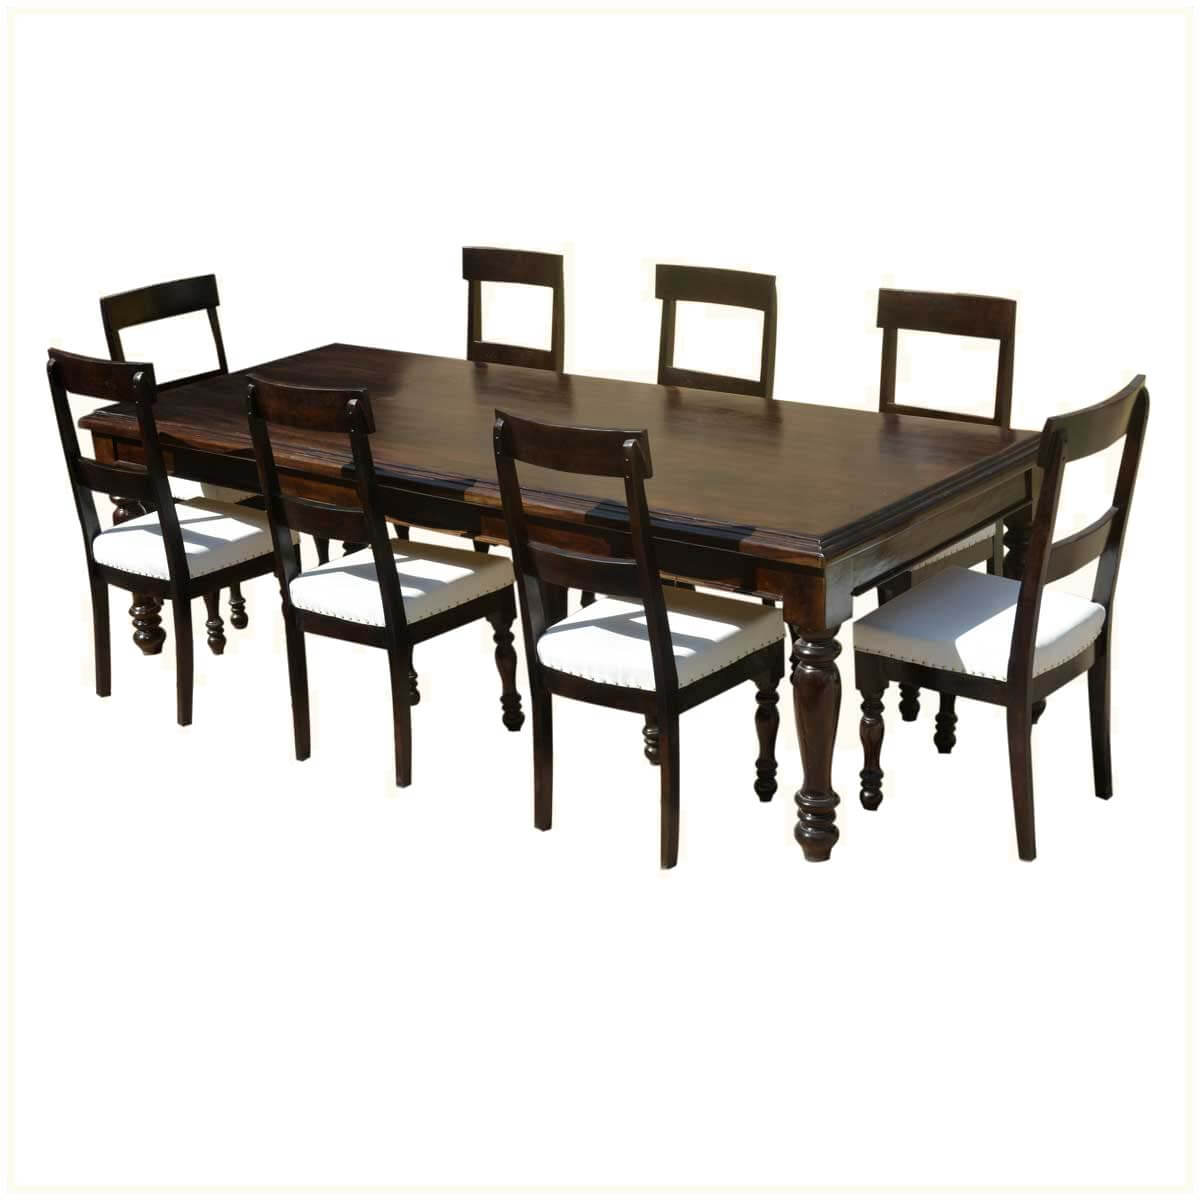 dining table with leather chairs acrylic clear chair american acacia wood and upholstered